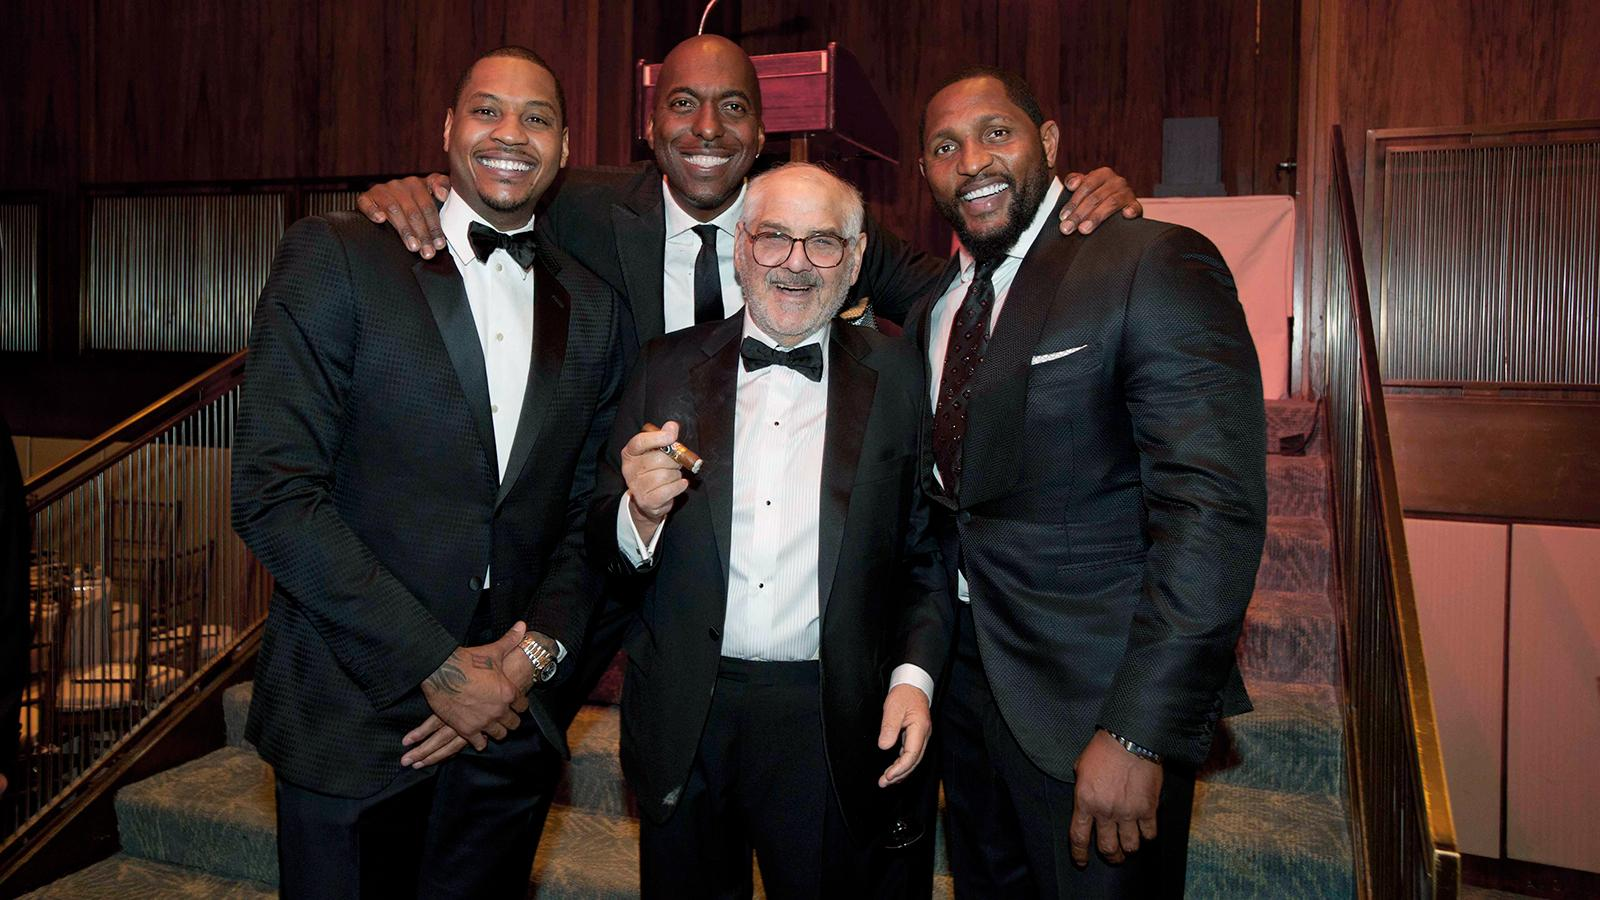 Sports Stars Gather at $1.8 Million Charity Dinner